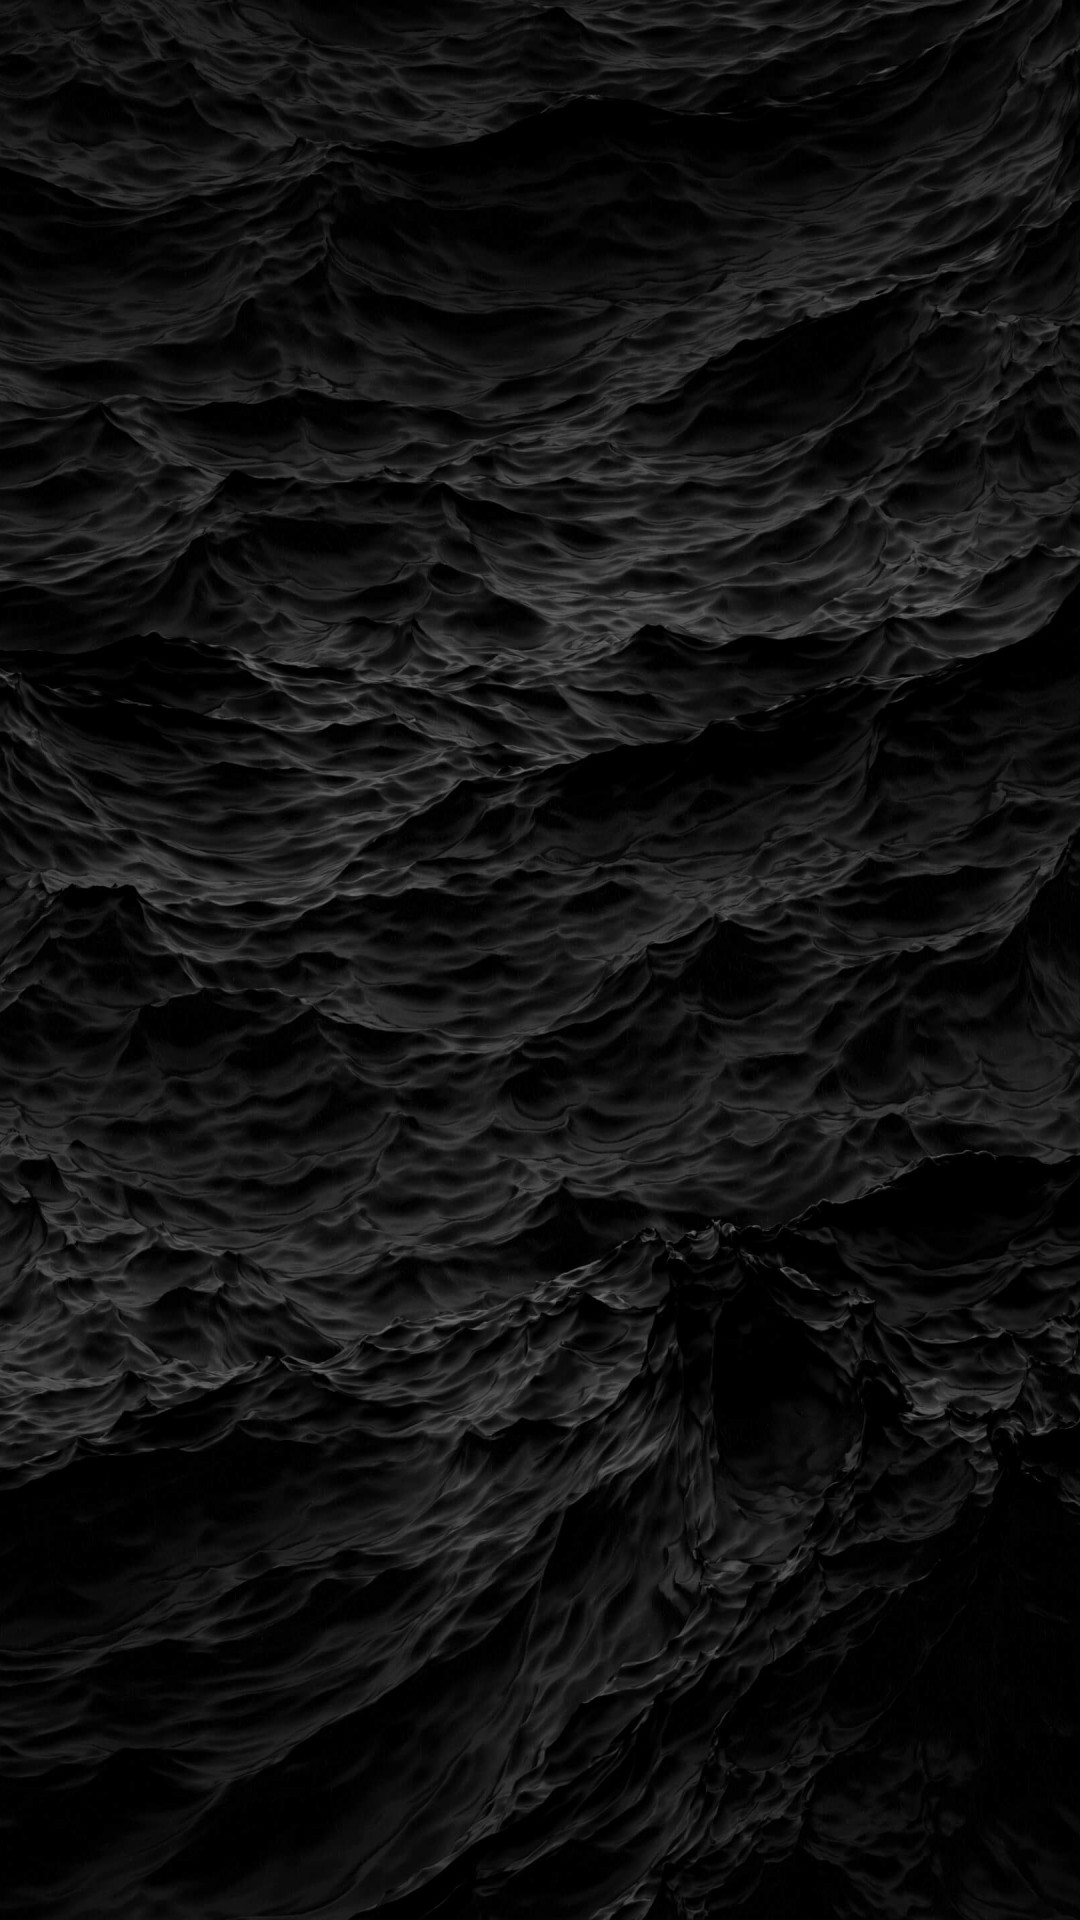 Black Waves Wallpaper for Google Nexus 5X